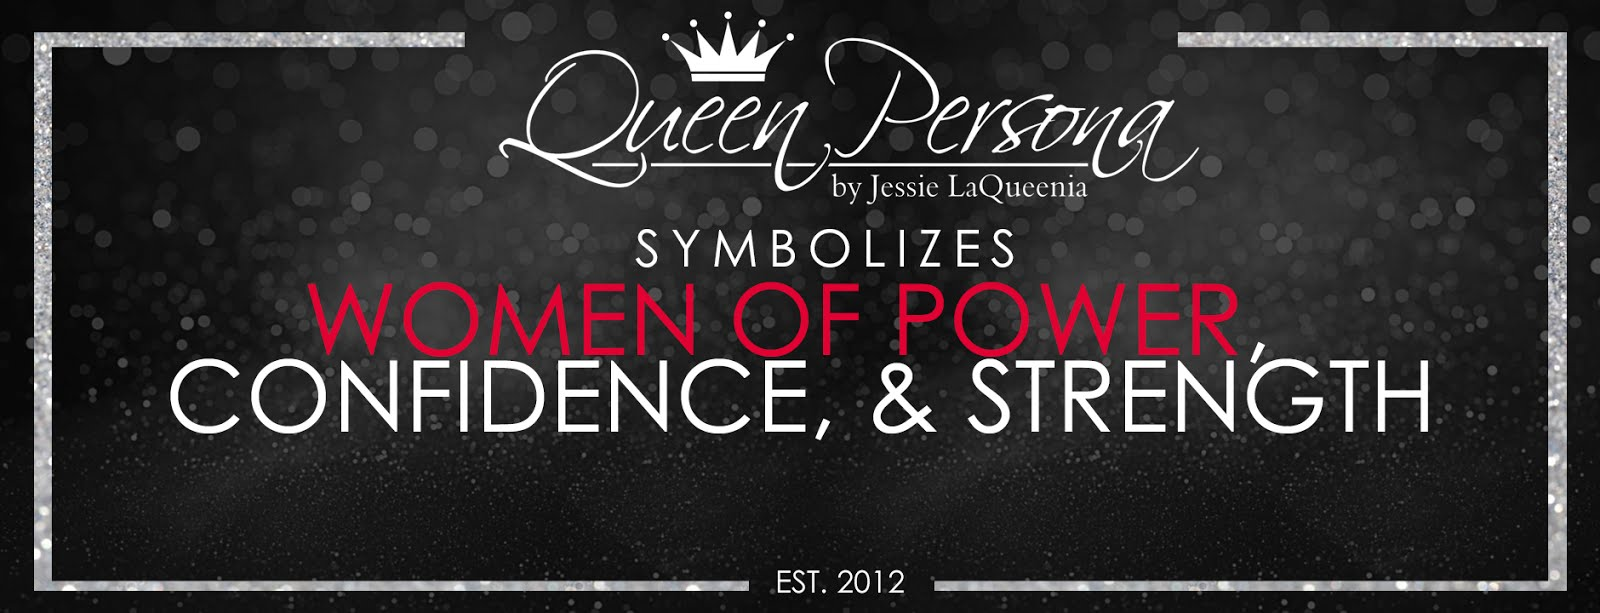 Shop Queen Persona Boutique